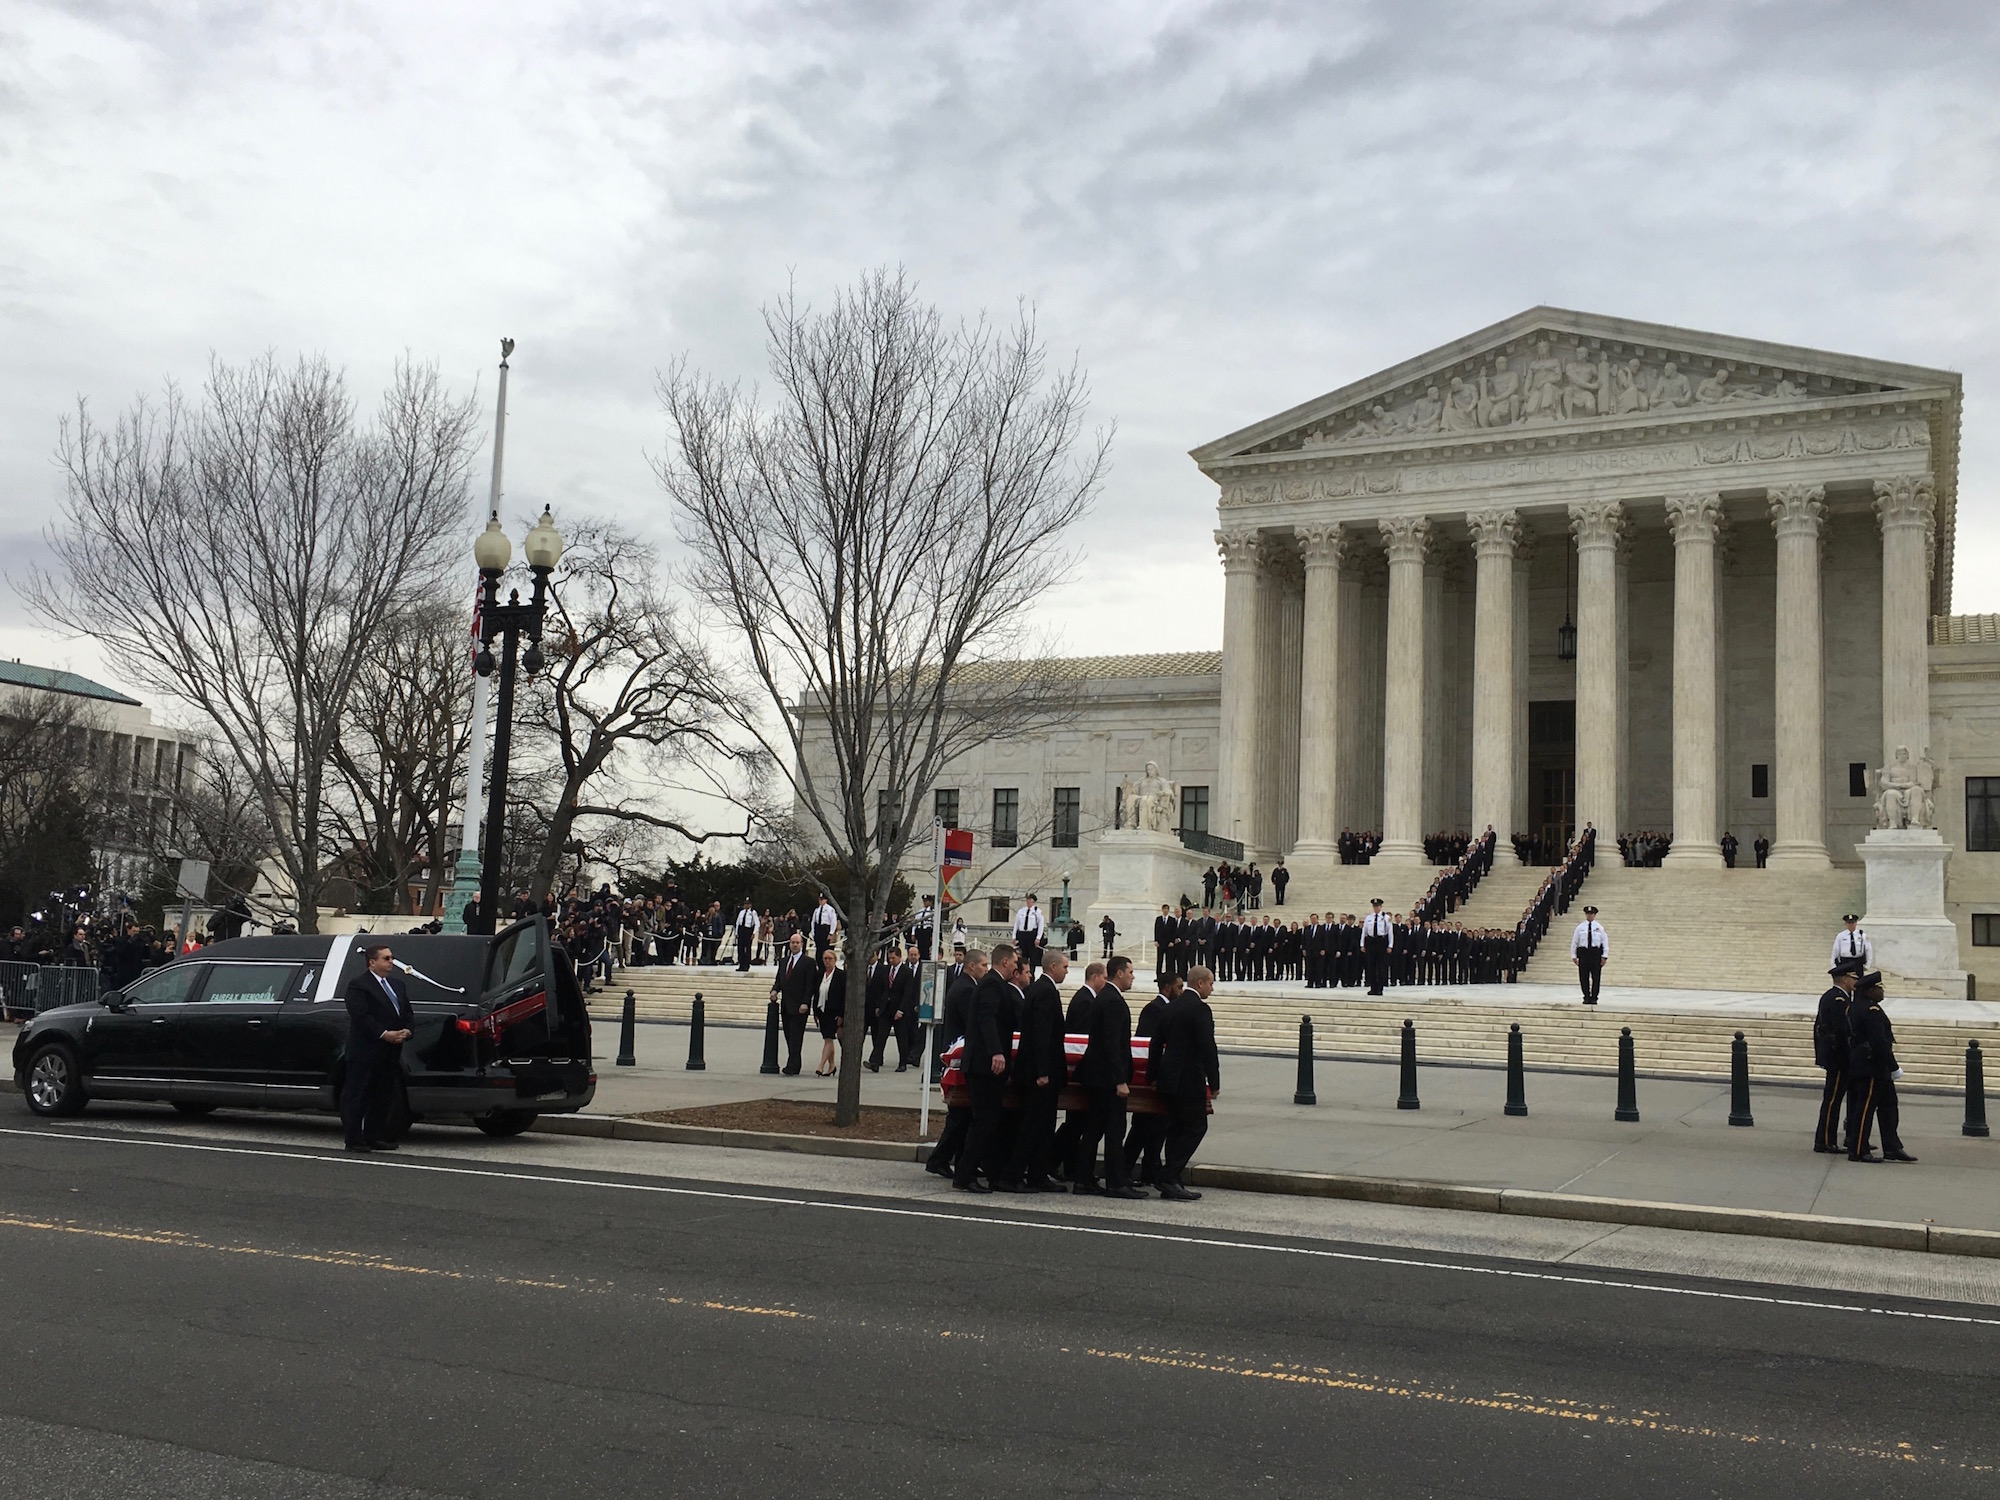 Supreme Court delays work due to ceremony for Justice Scalia